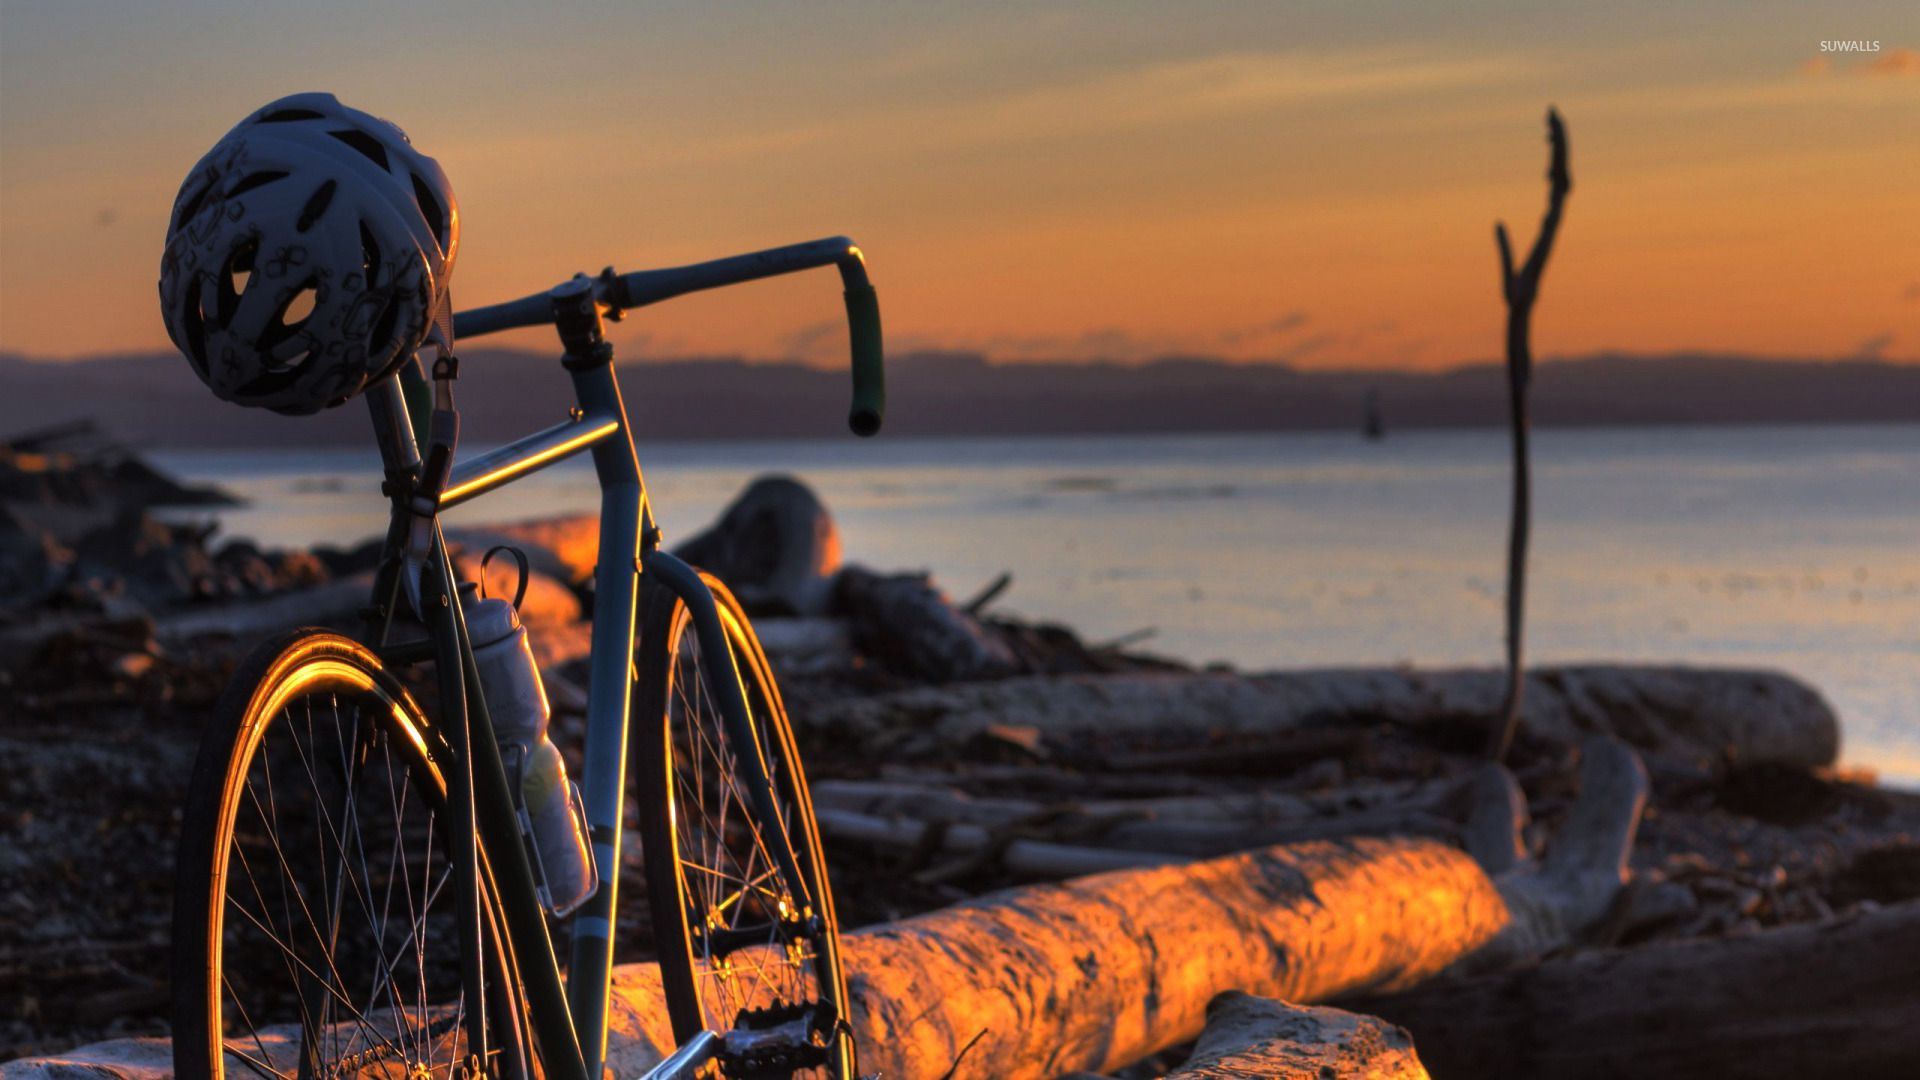 Bicycle Wallpapers Bicycle Wallpaper Bicycle Photography Sunset Photography